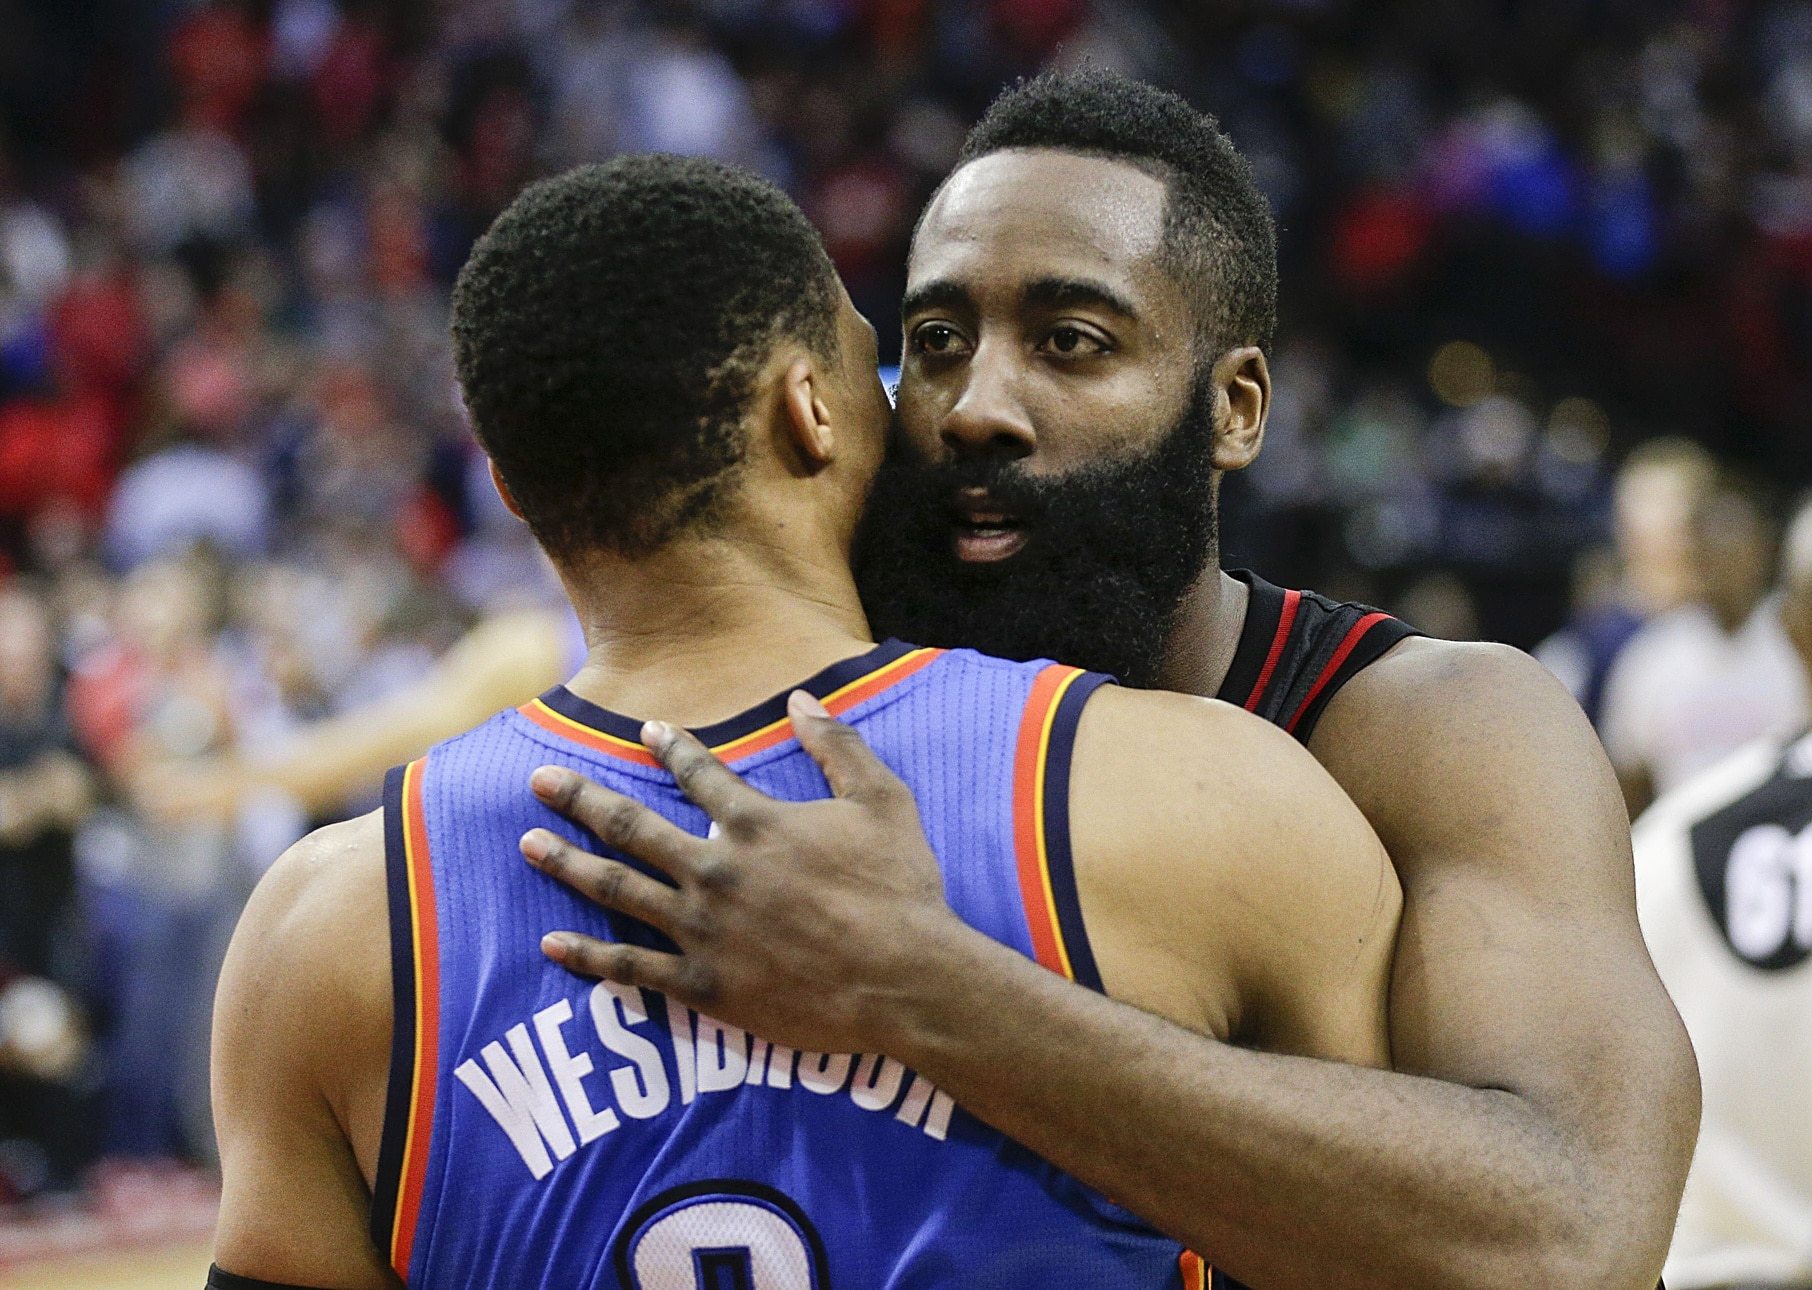 Jan 5, 2017; Houston, TX, USA; Houston Rockets guard James Harden (13) hugs Oklahoma City Thunder guard Russell Westbrook (0) after the Rockets defeated the City Thunder at Toyota Center. Houston Rockets won 118 to 116. Mandatory Credit: Thomas B. Shea-USA TODAY Sports